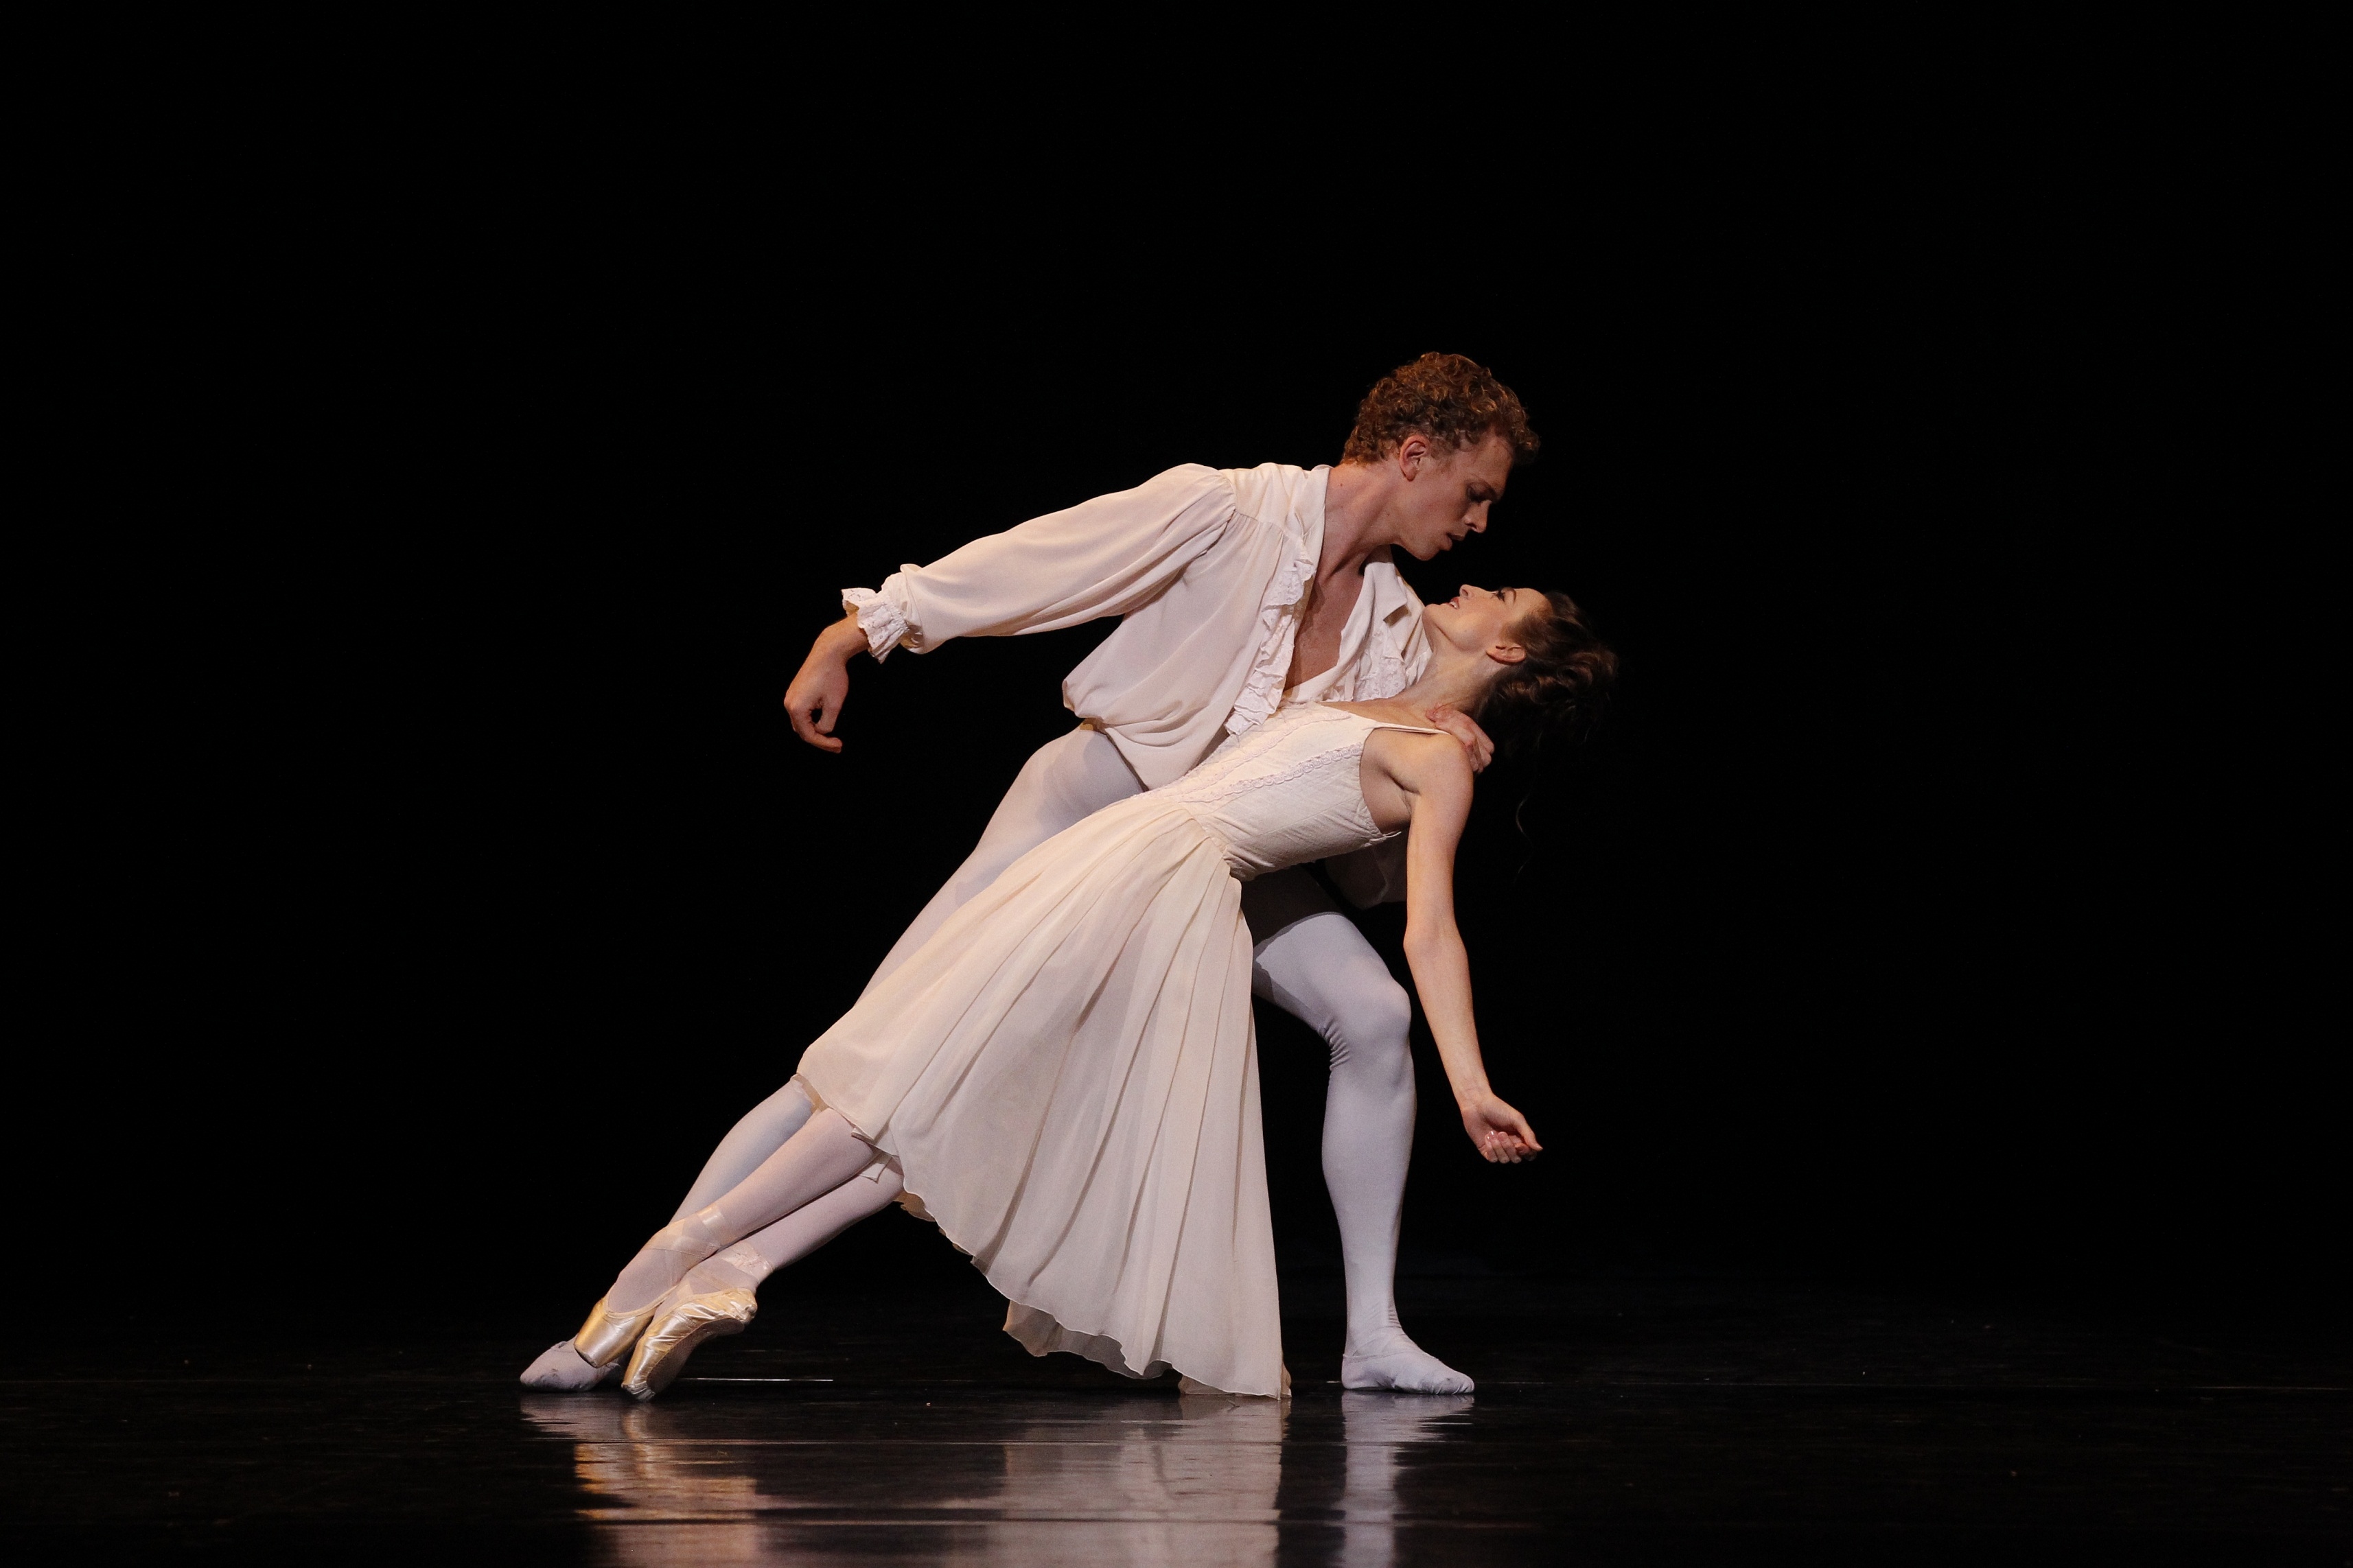 Adam Bull and Julie Kent in Manon 50th Anniversary Gala Photo by Jeff Busby